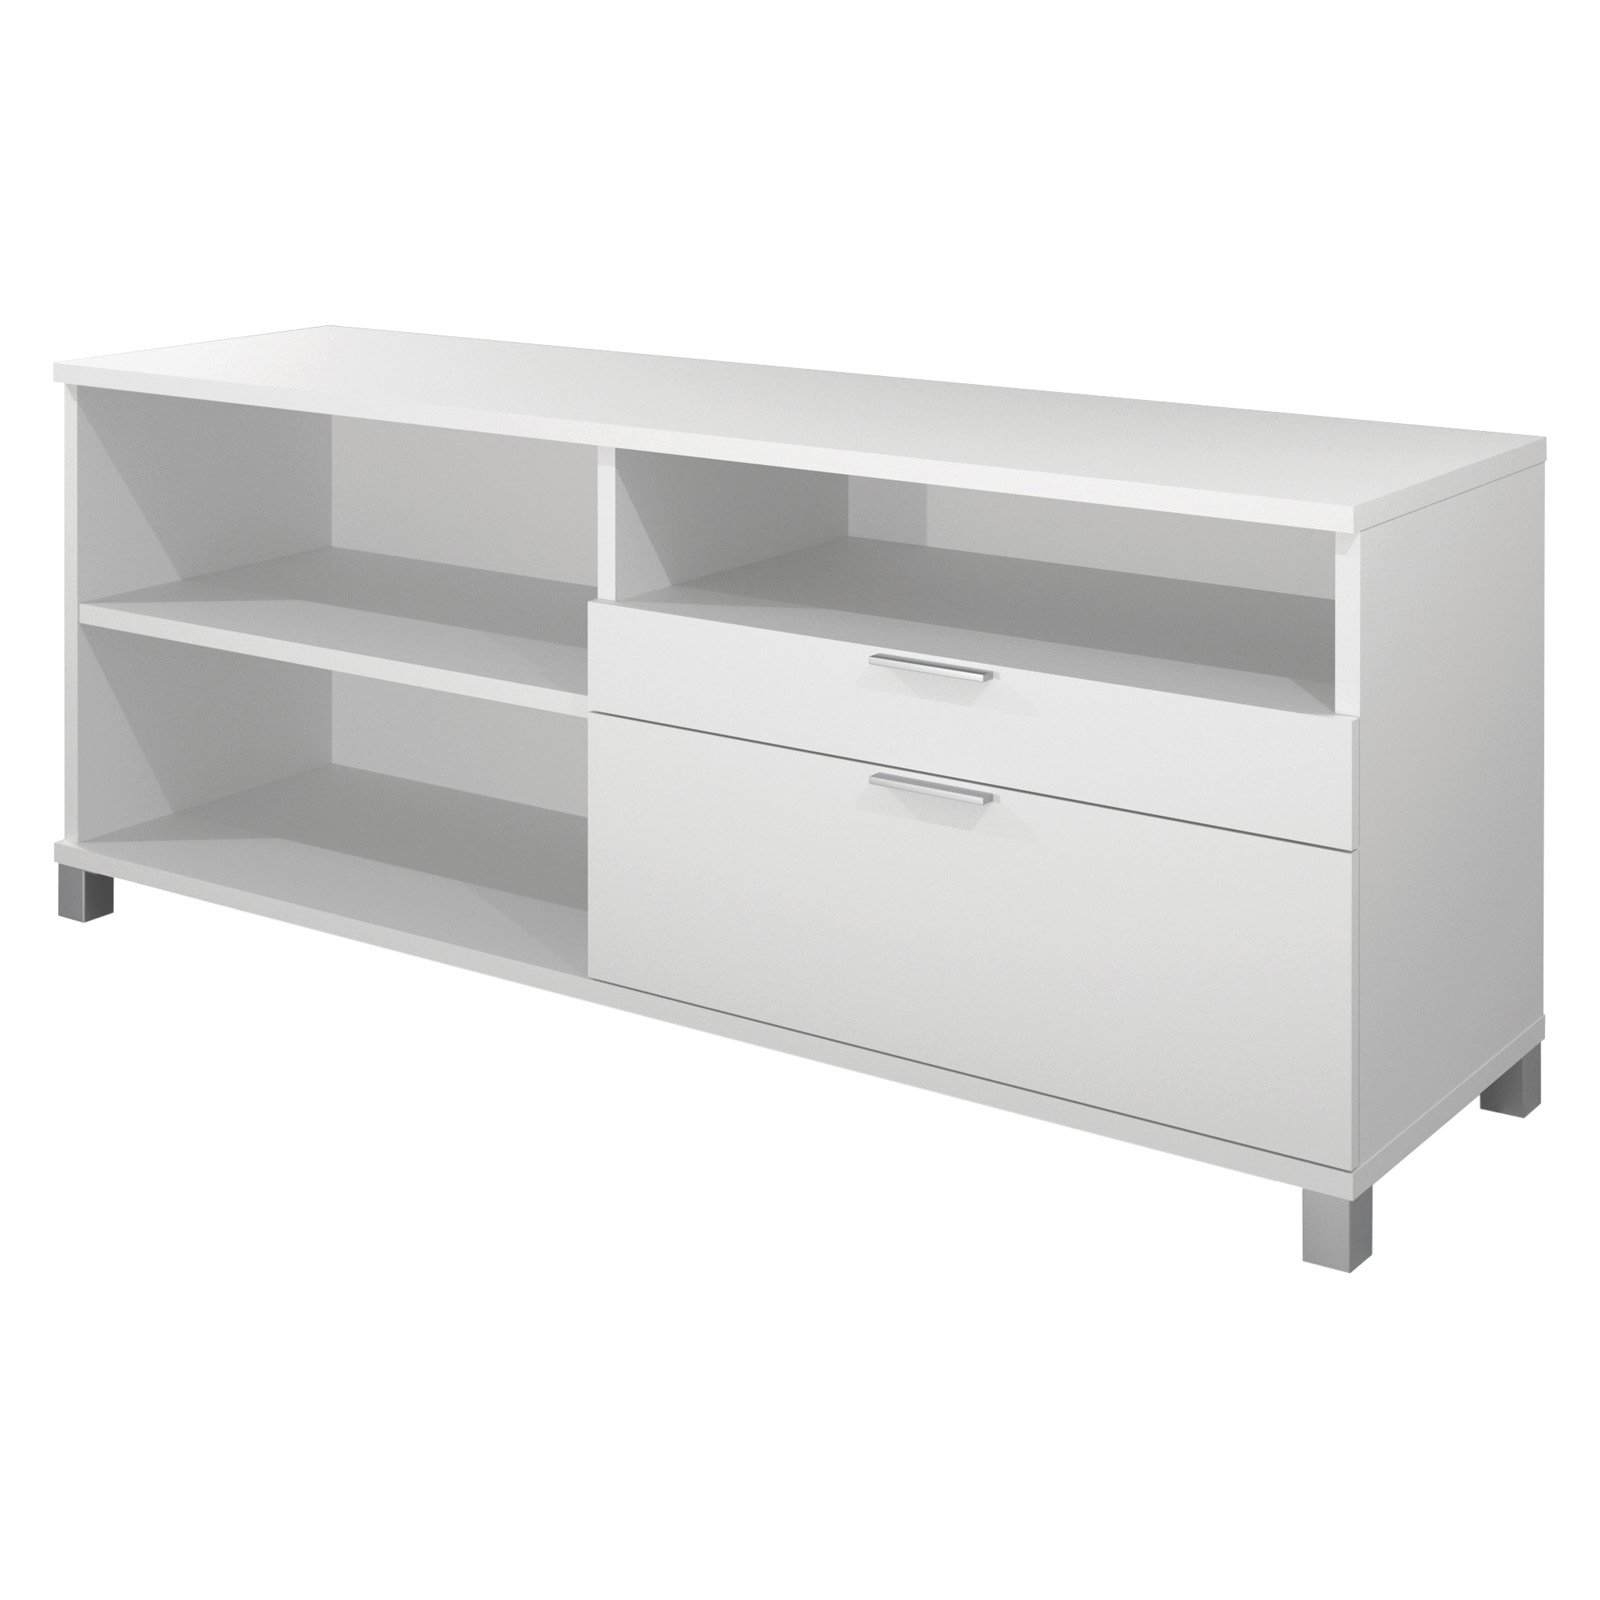 Bestar Pro-Linea Credenza by Generic